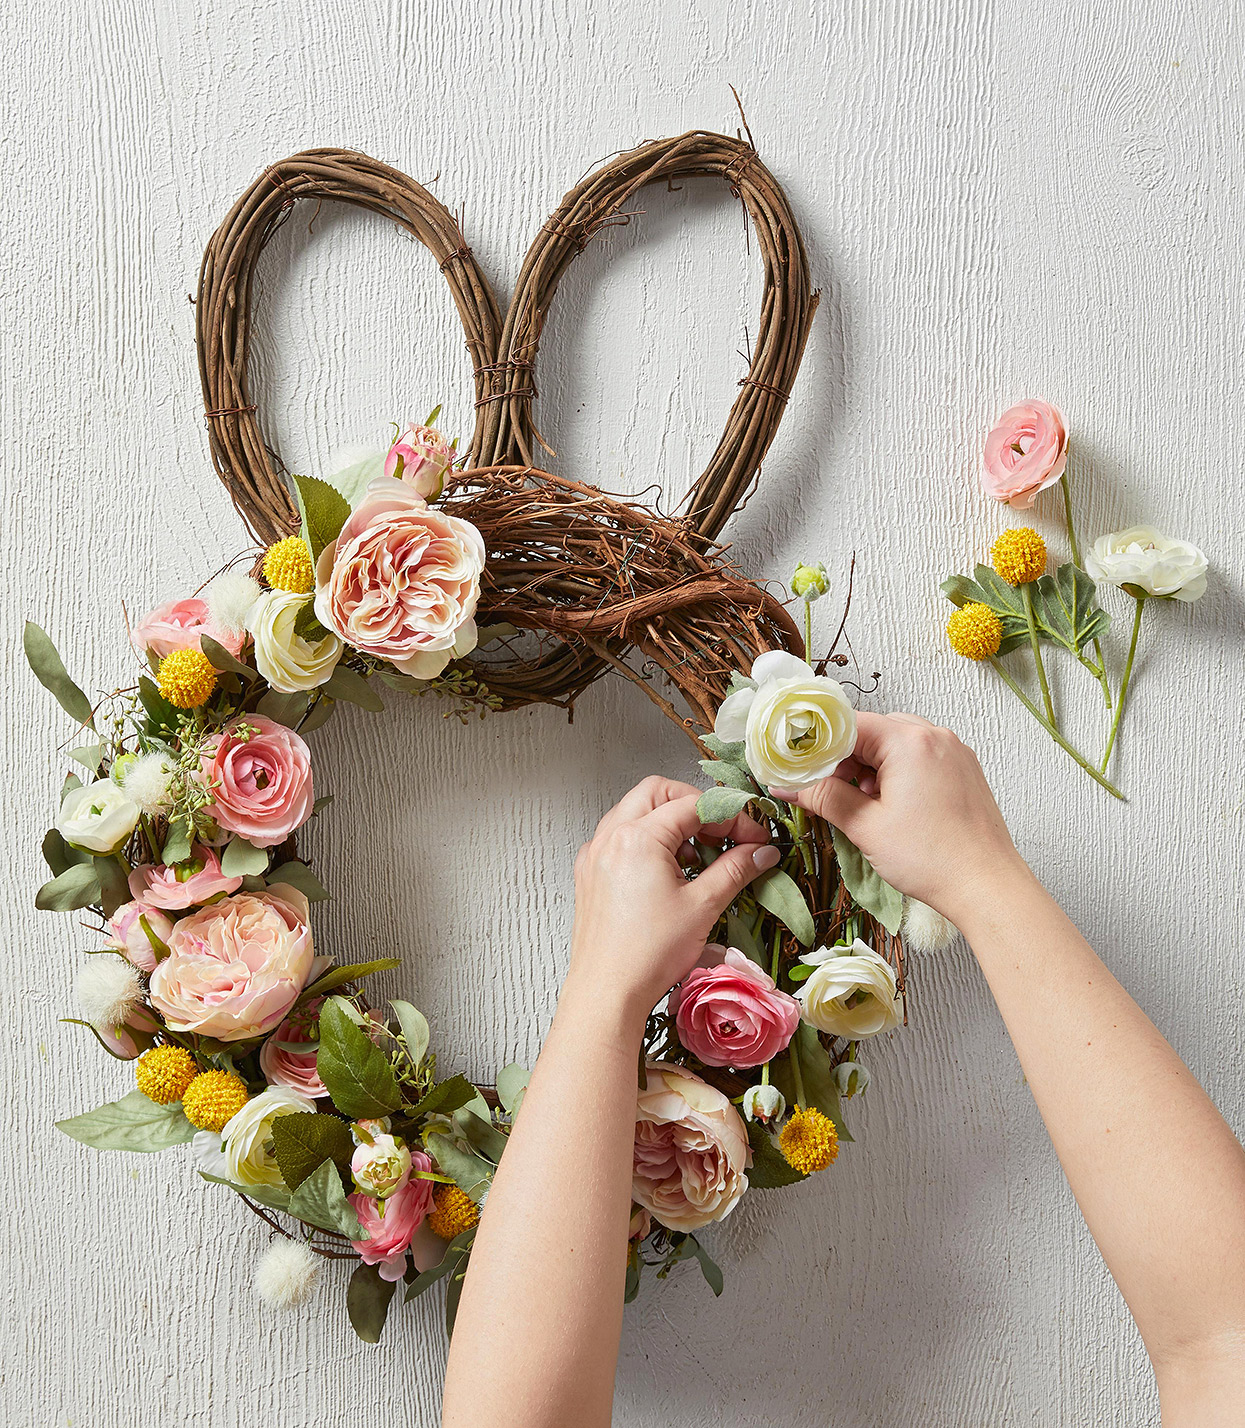 woman placing artificial blooms on easter-shaped wreath